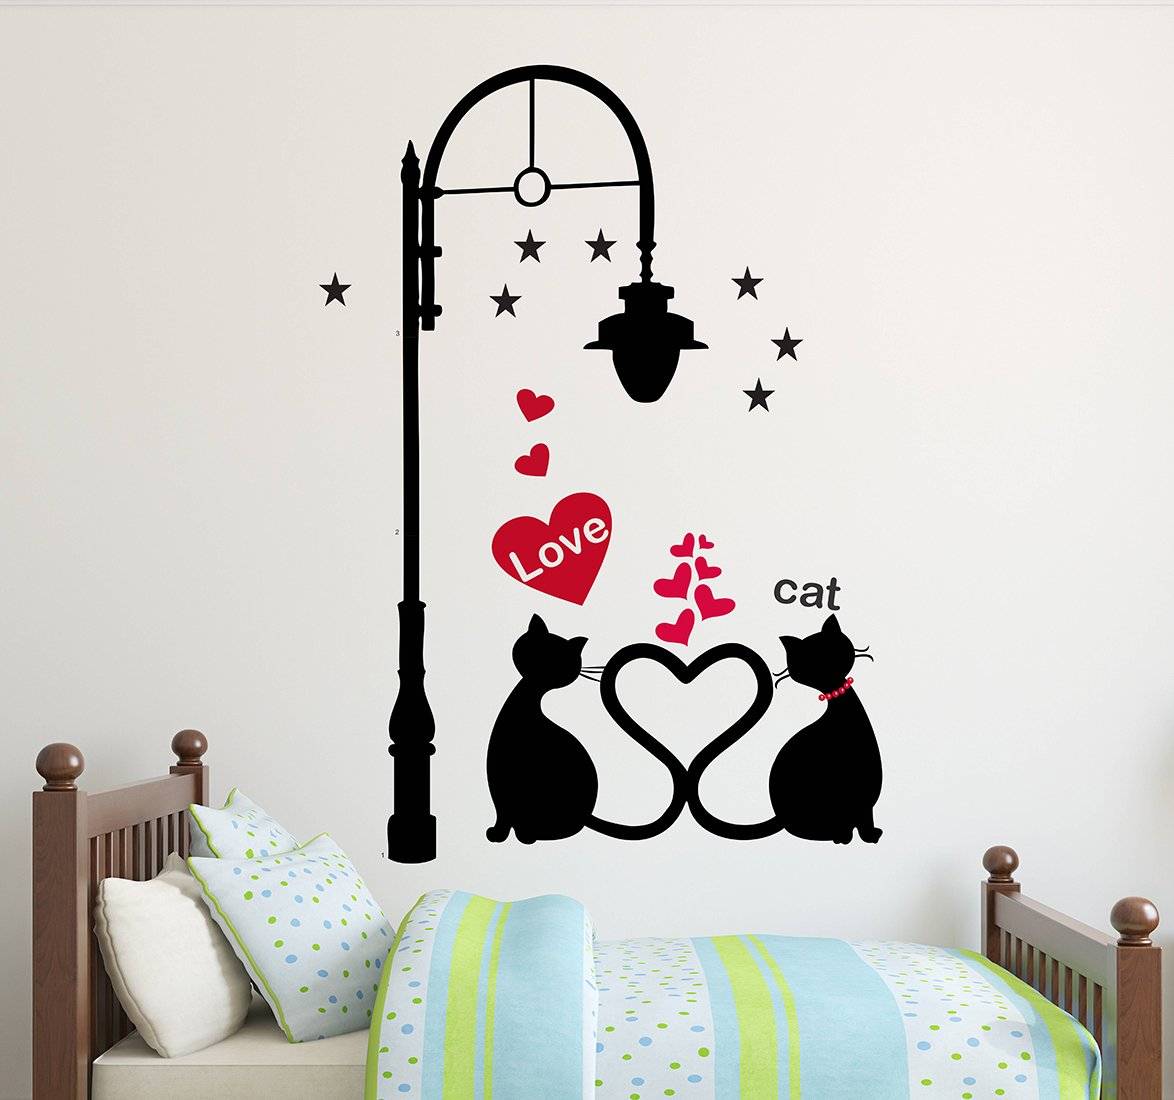 Luke and Lilly Love And Cat Design Vinyl Wall Sticker (60*85